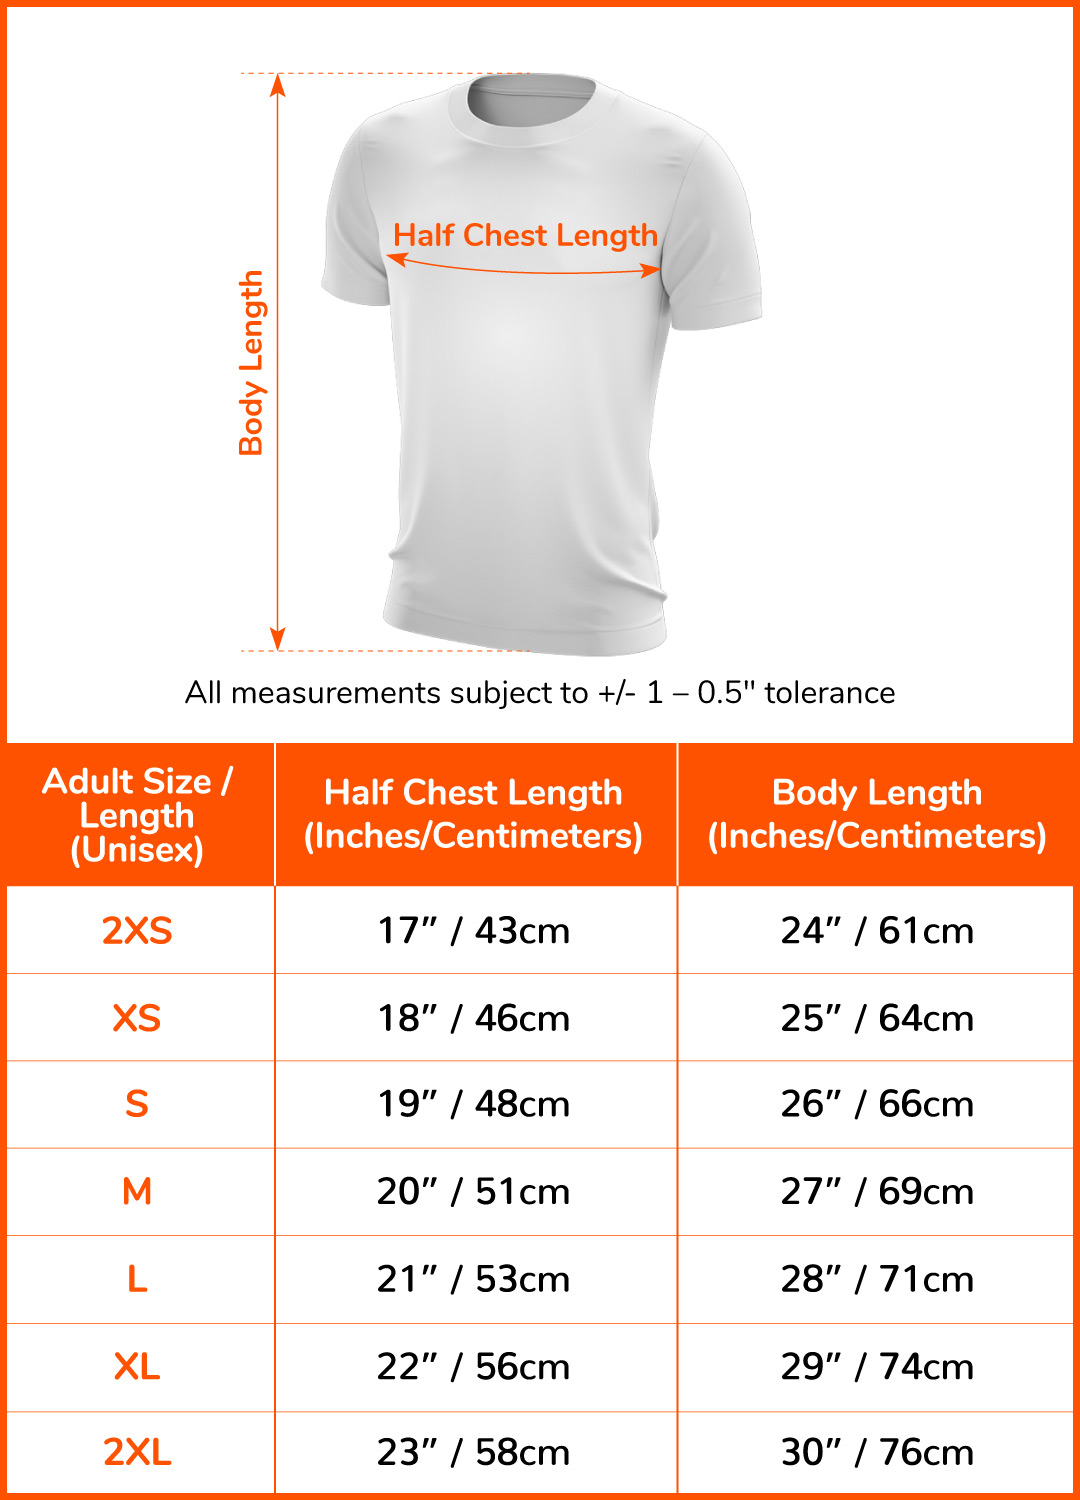 Finisher T-Shirt - 7.5km#size-chart